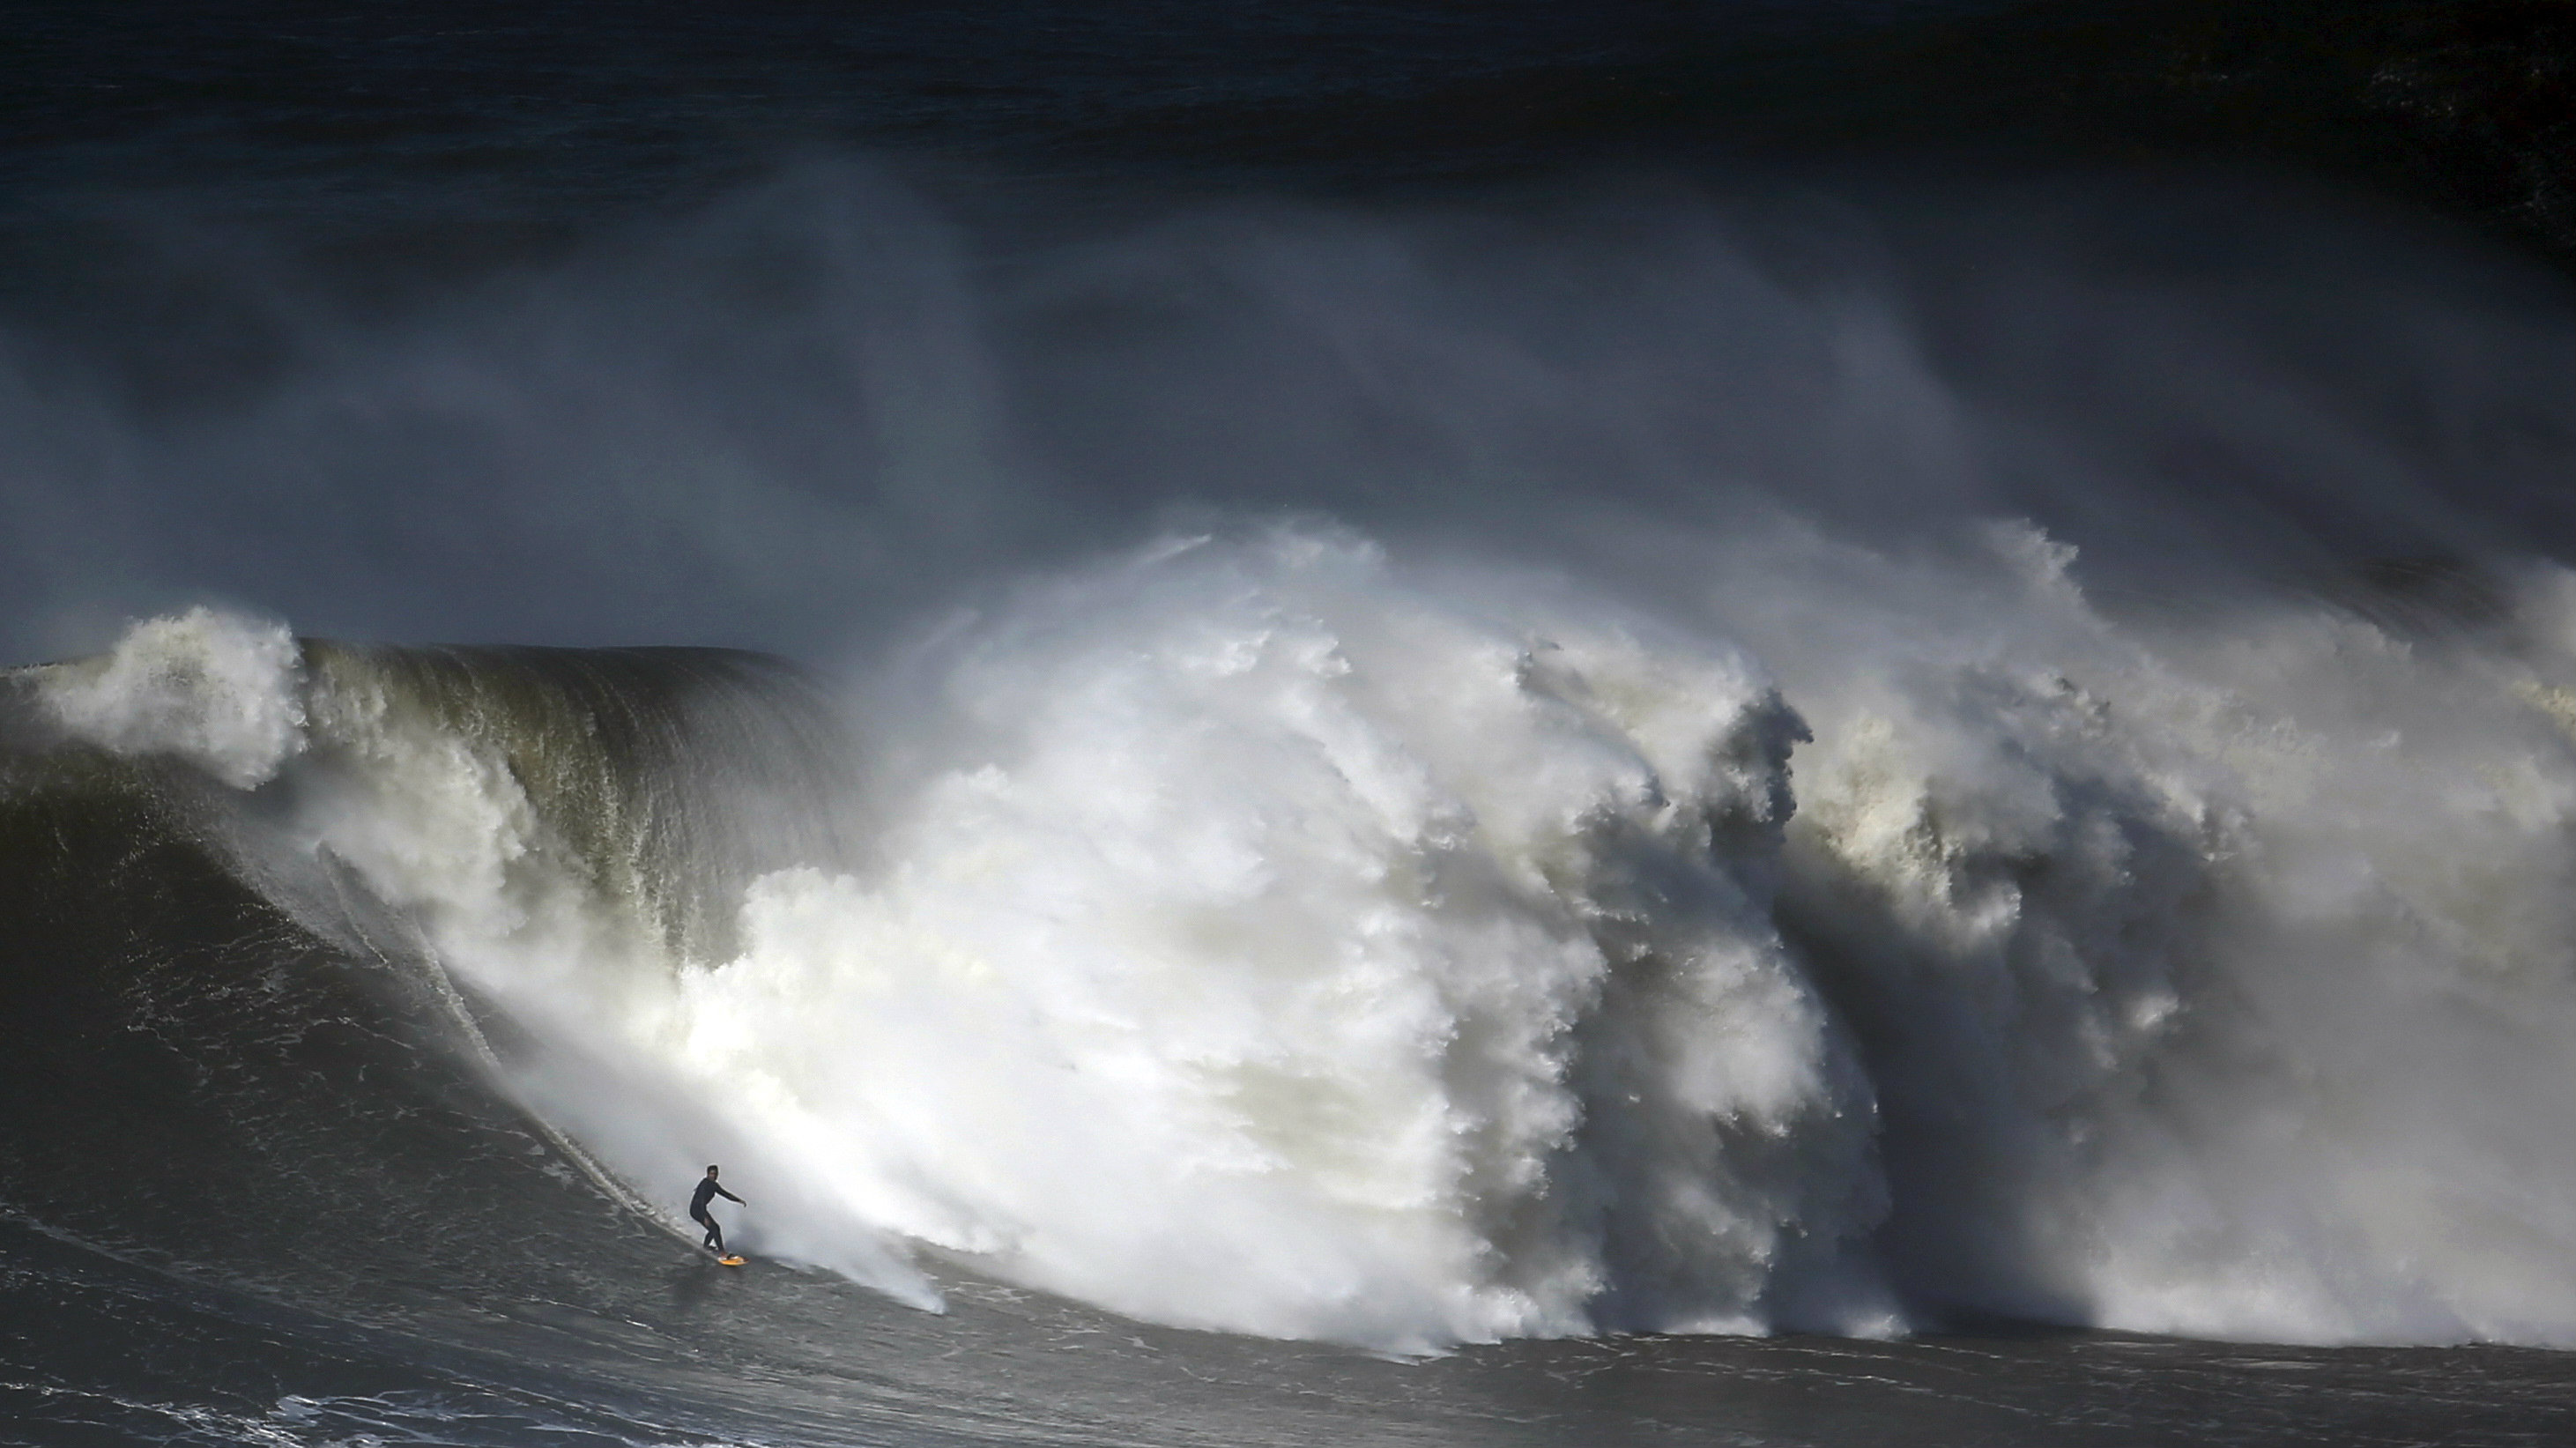 A Big Wave Surfers Guide To Taking Calculated Risks Quartz